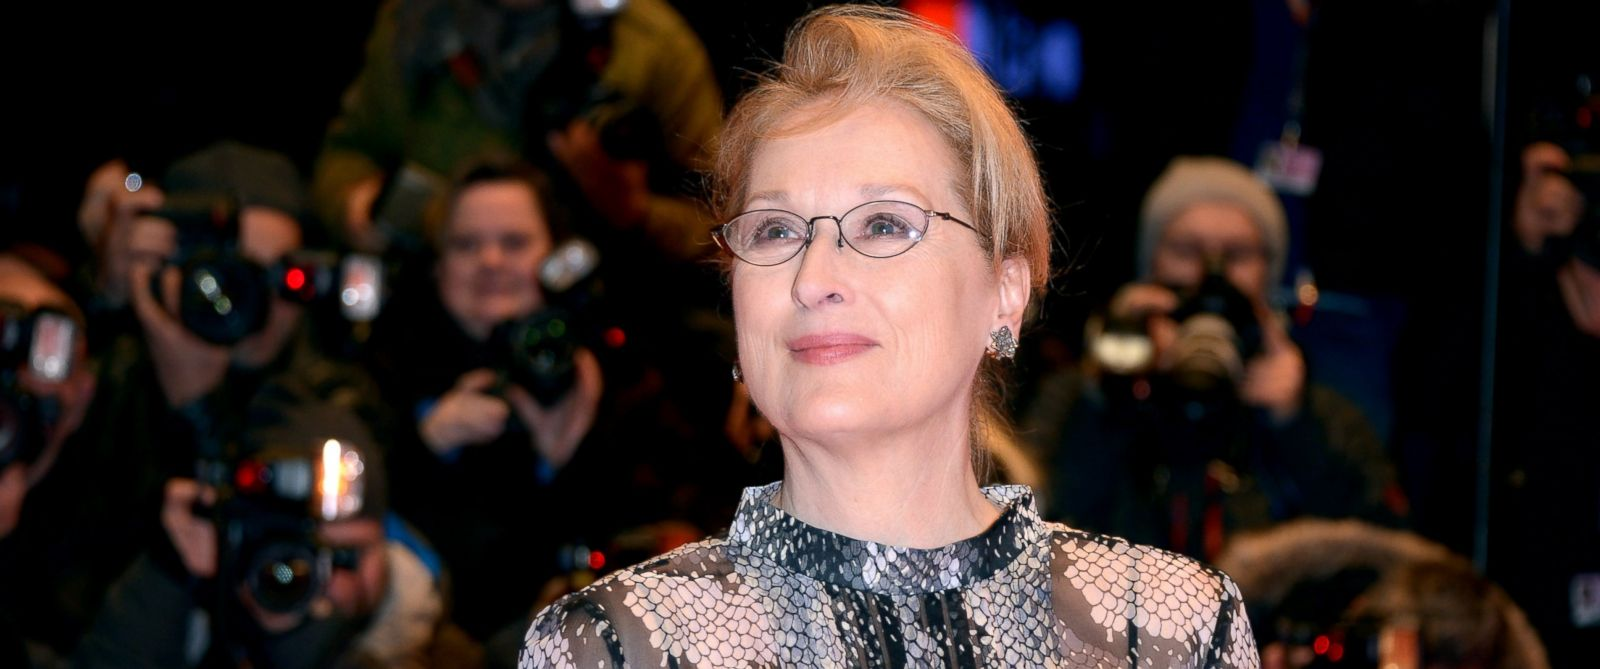 PHOTO: Meryl Streep attends the Hail, Caesar! premiere during the 66th Berlinale International Film Festival Berlin at Berlinale Palace, Feb. 11, 2016, in Berlin.